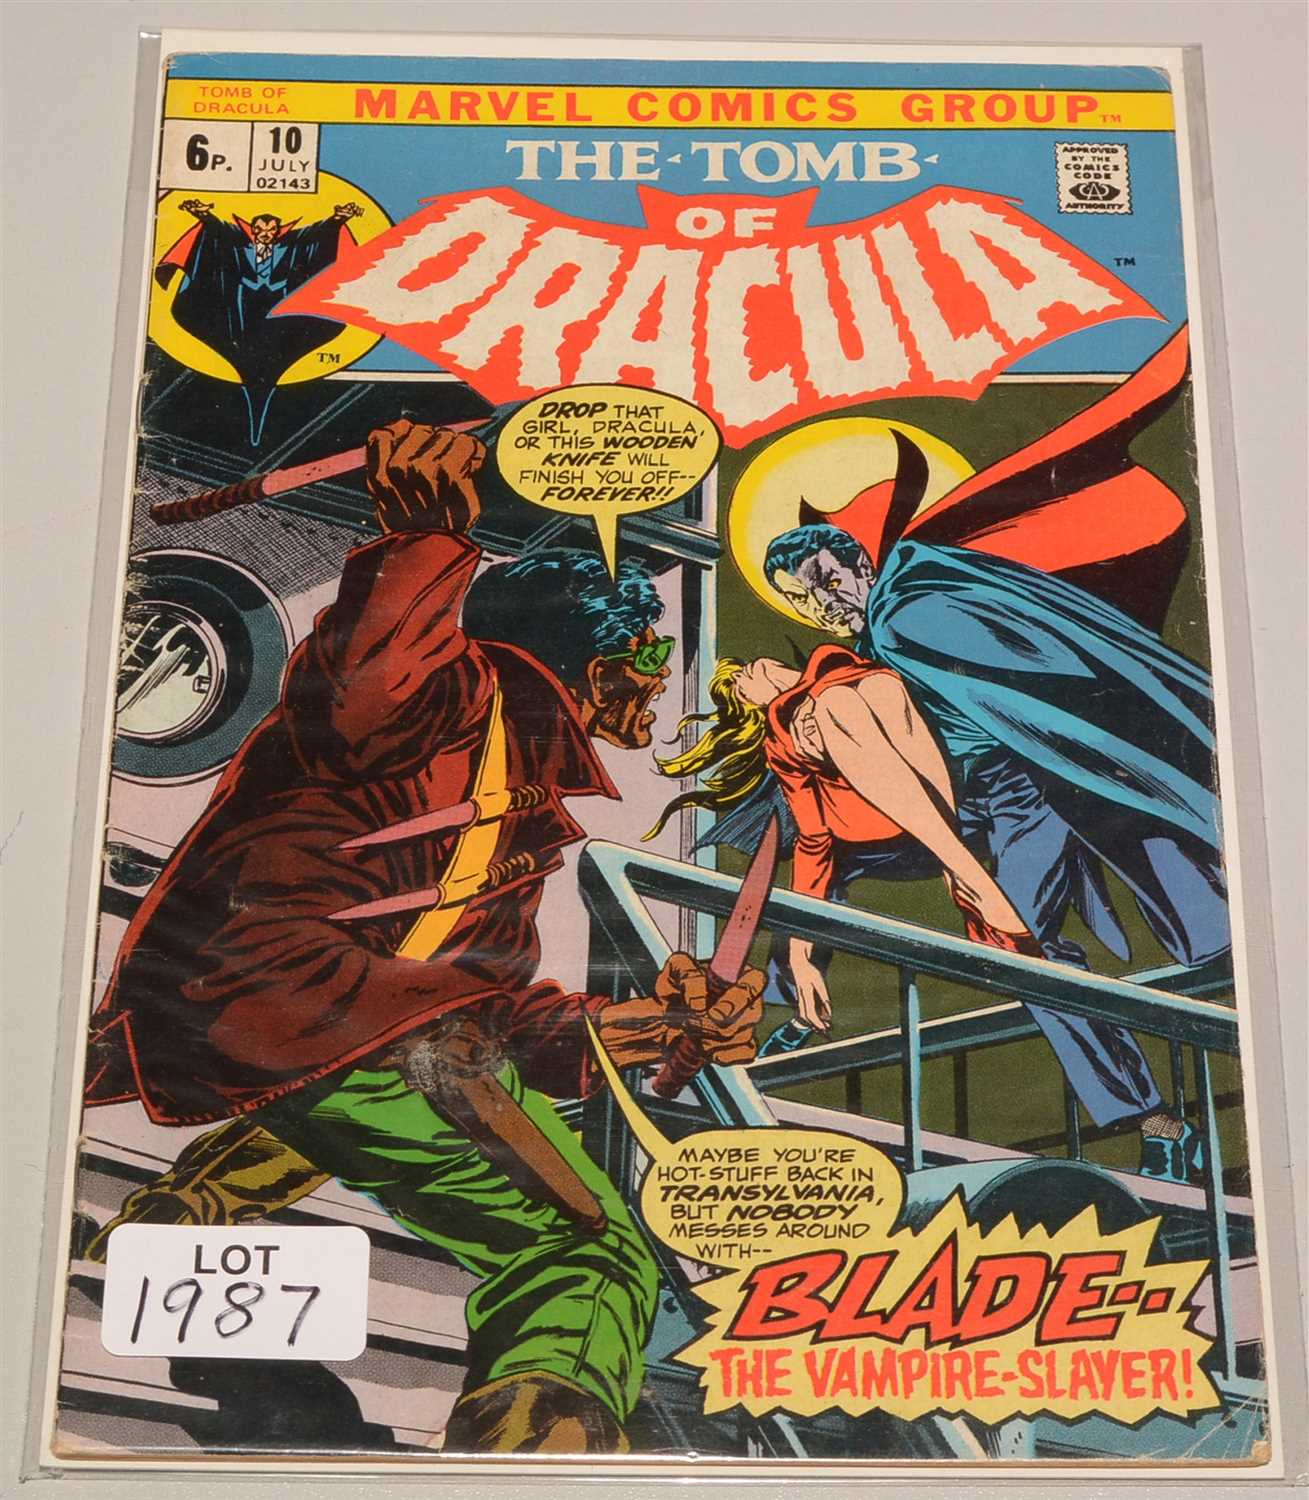 Lot 1987-The Tomb of Dracula No. 10.